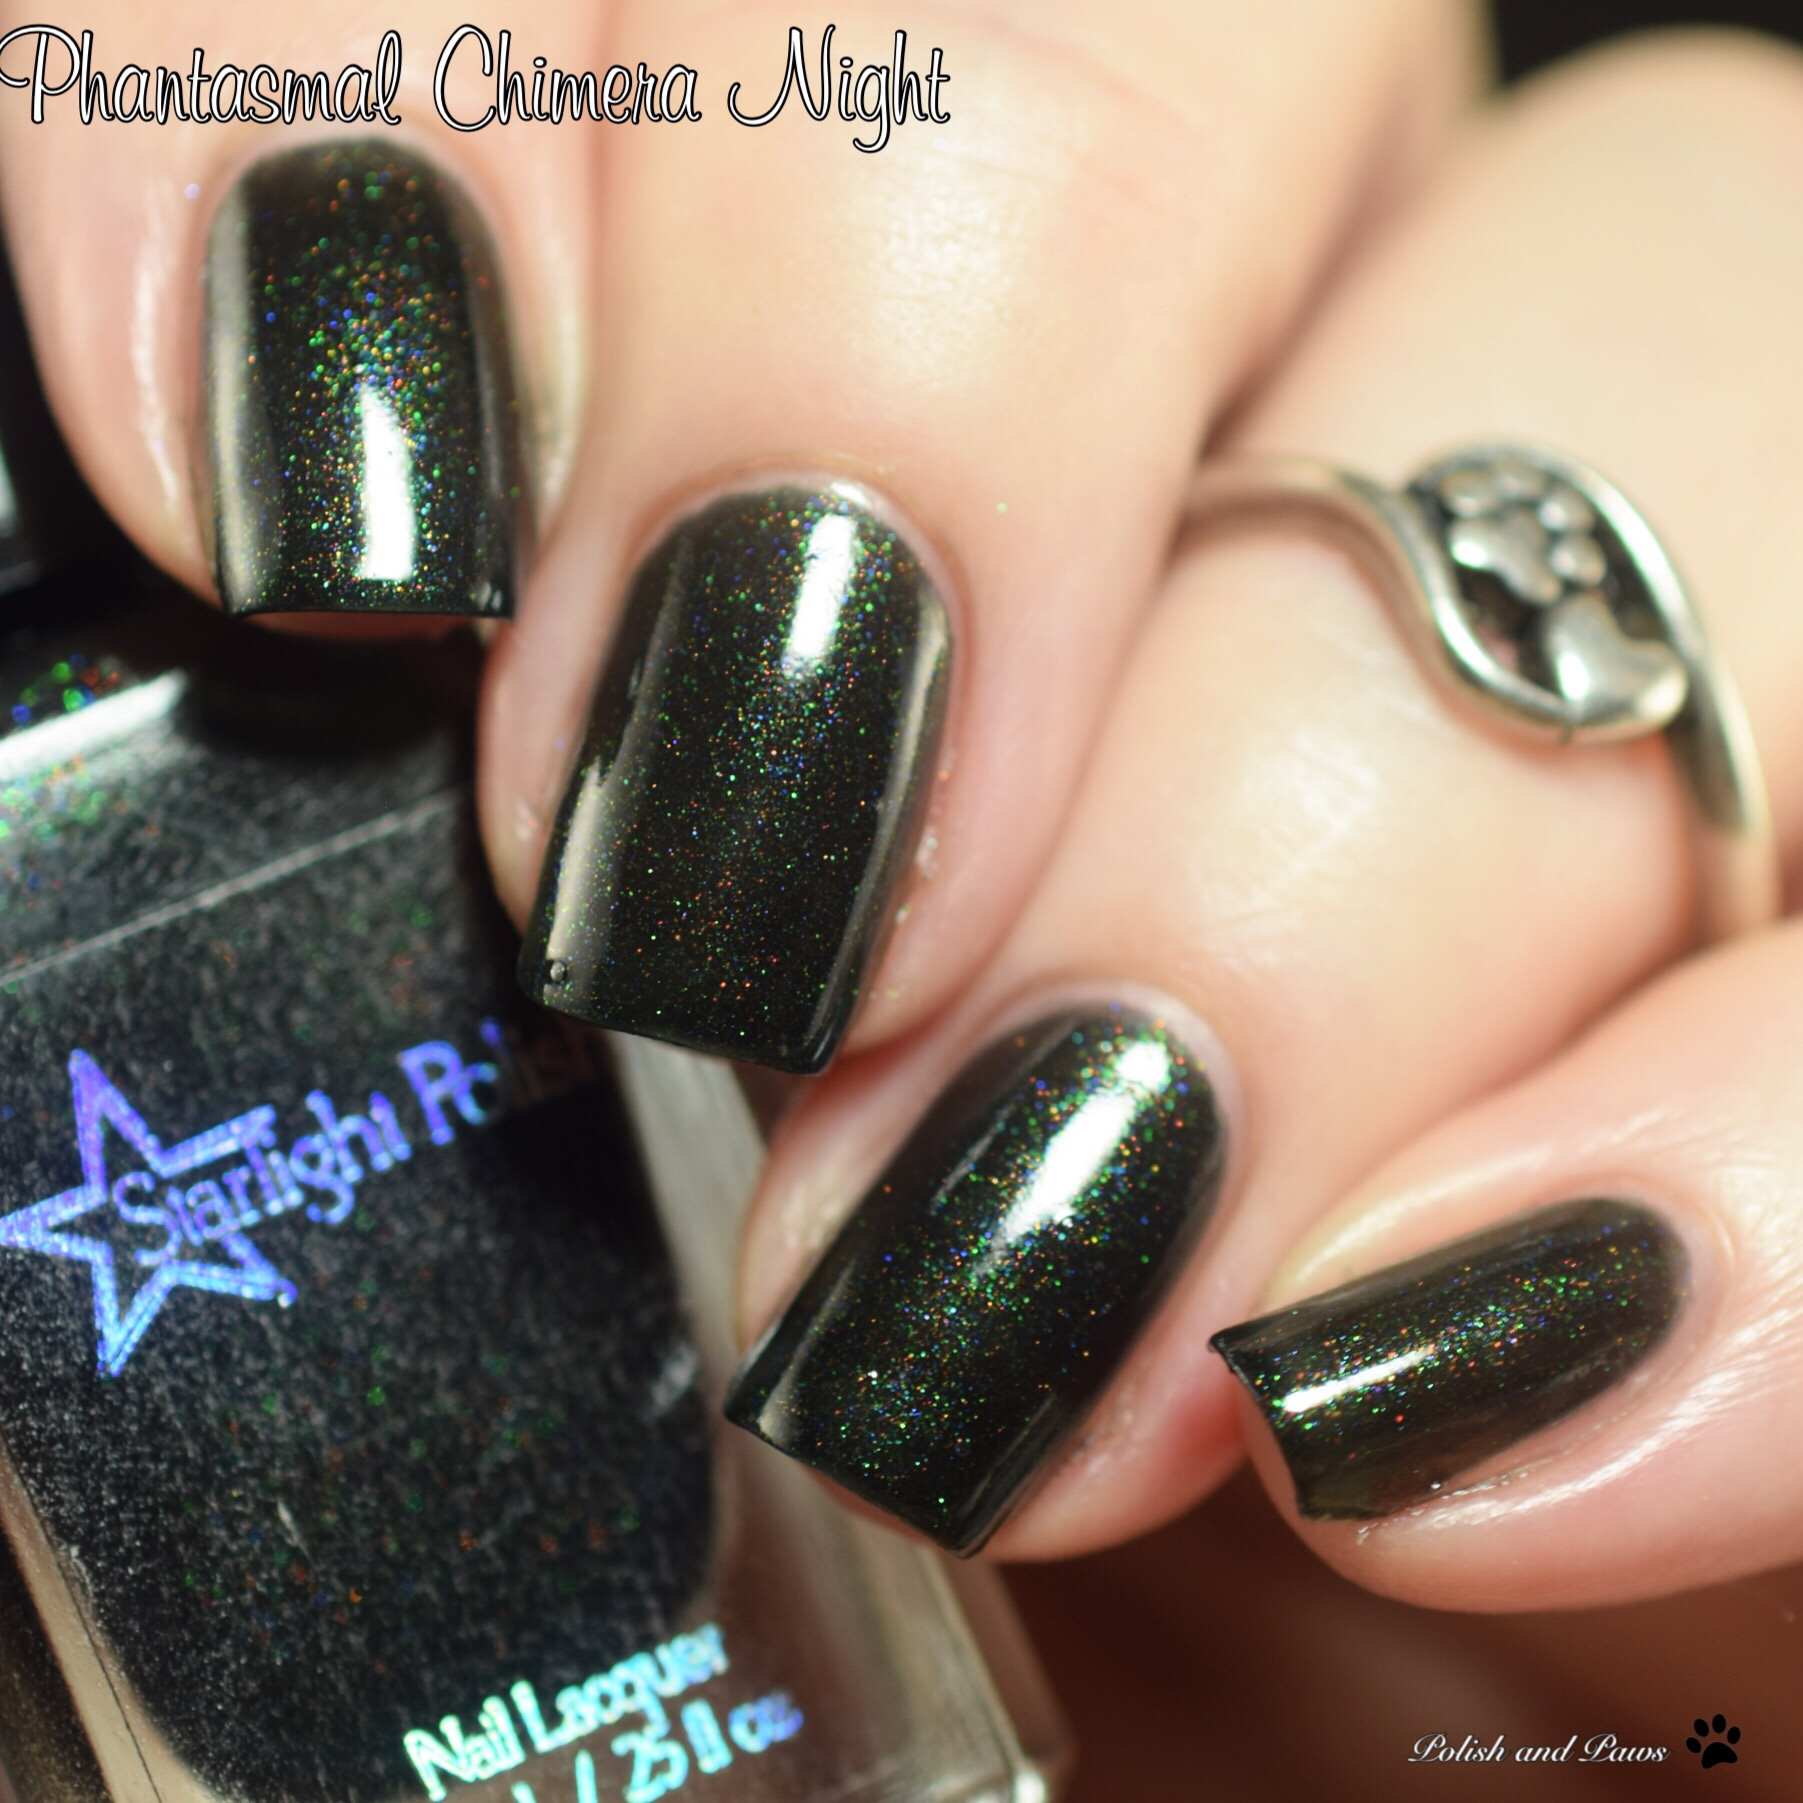 Starlight Polish Phantasmal Chimera Night